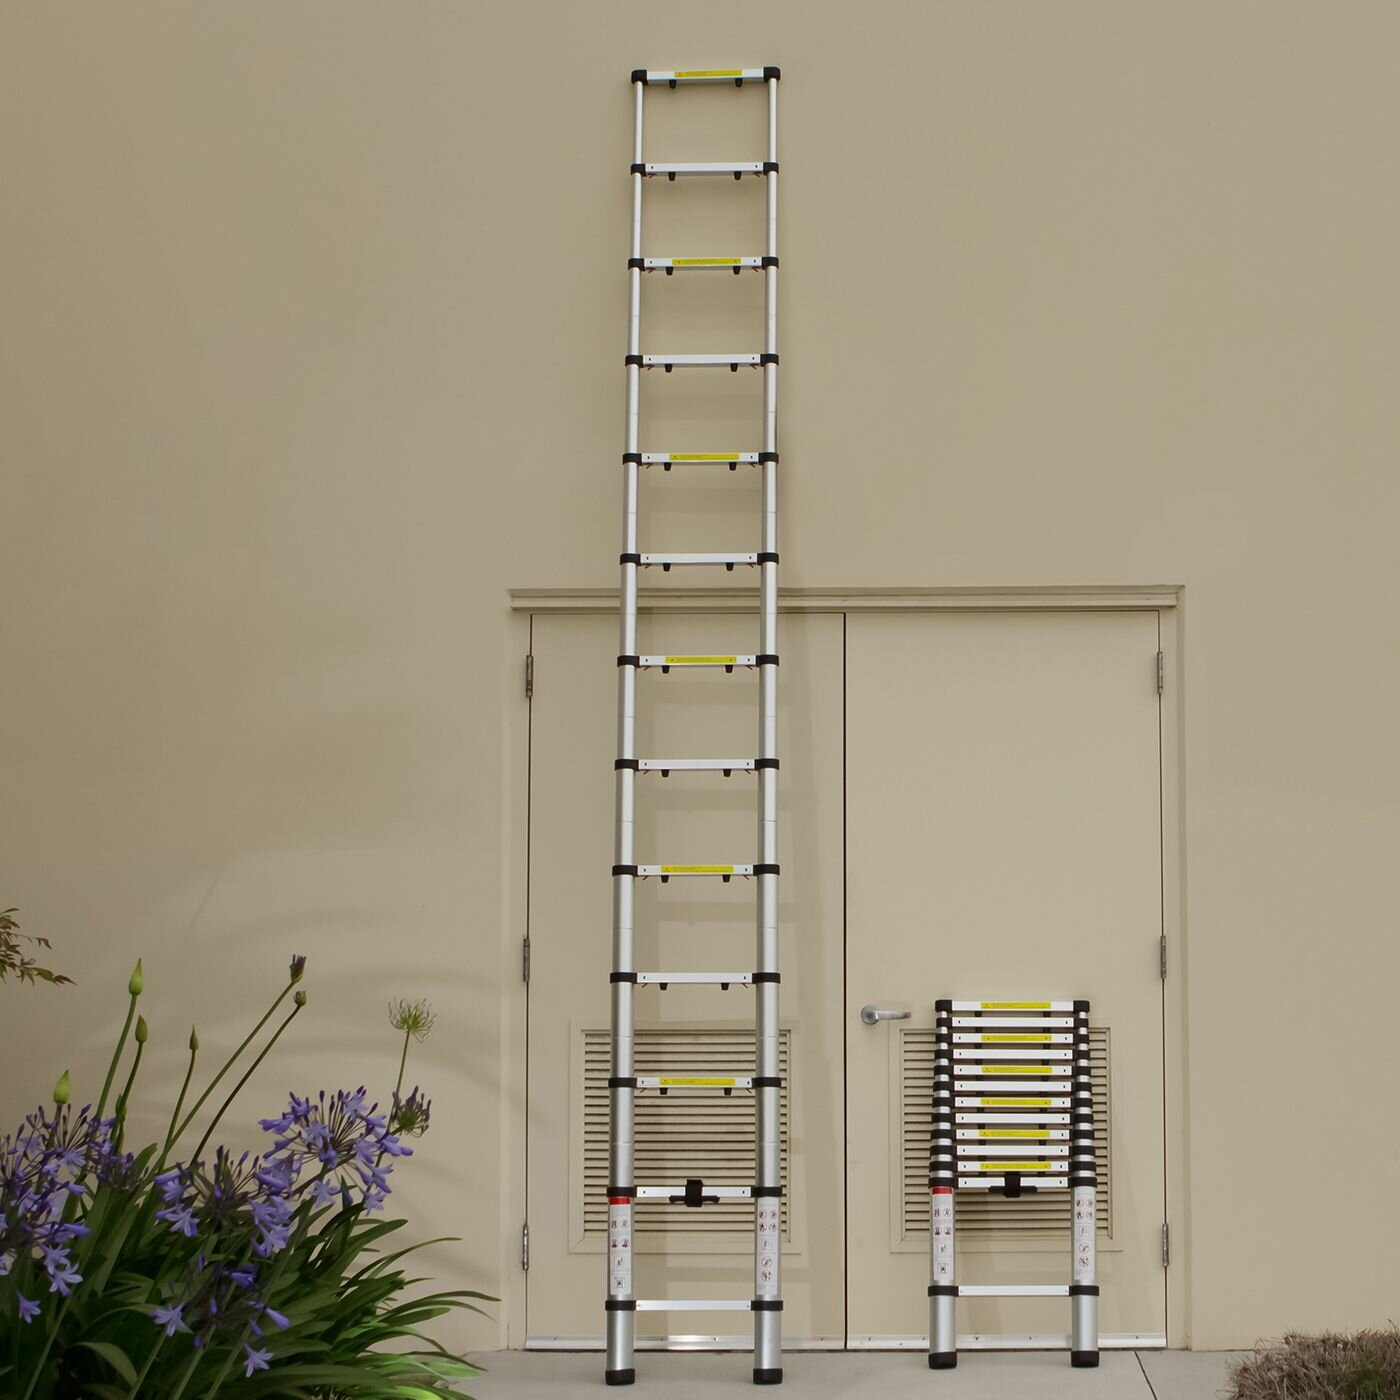 12 5 Extension Telescoping Aluminum Ladder : Oxgord ft aluminum telescoping extension ladder with